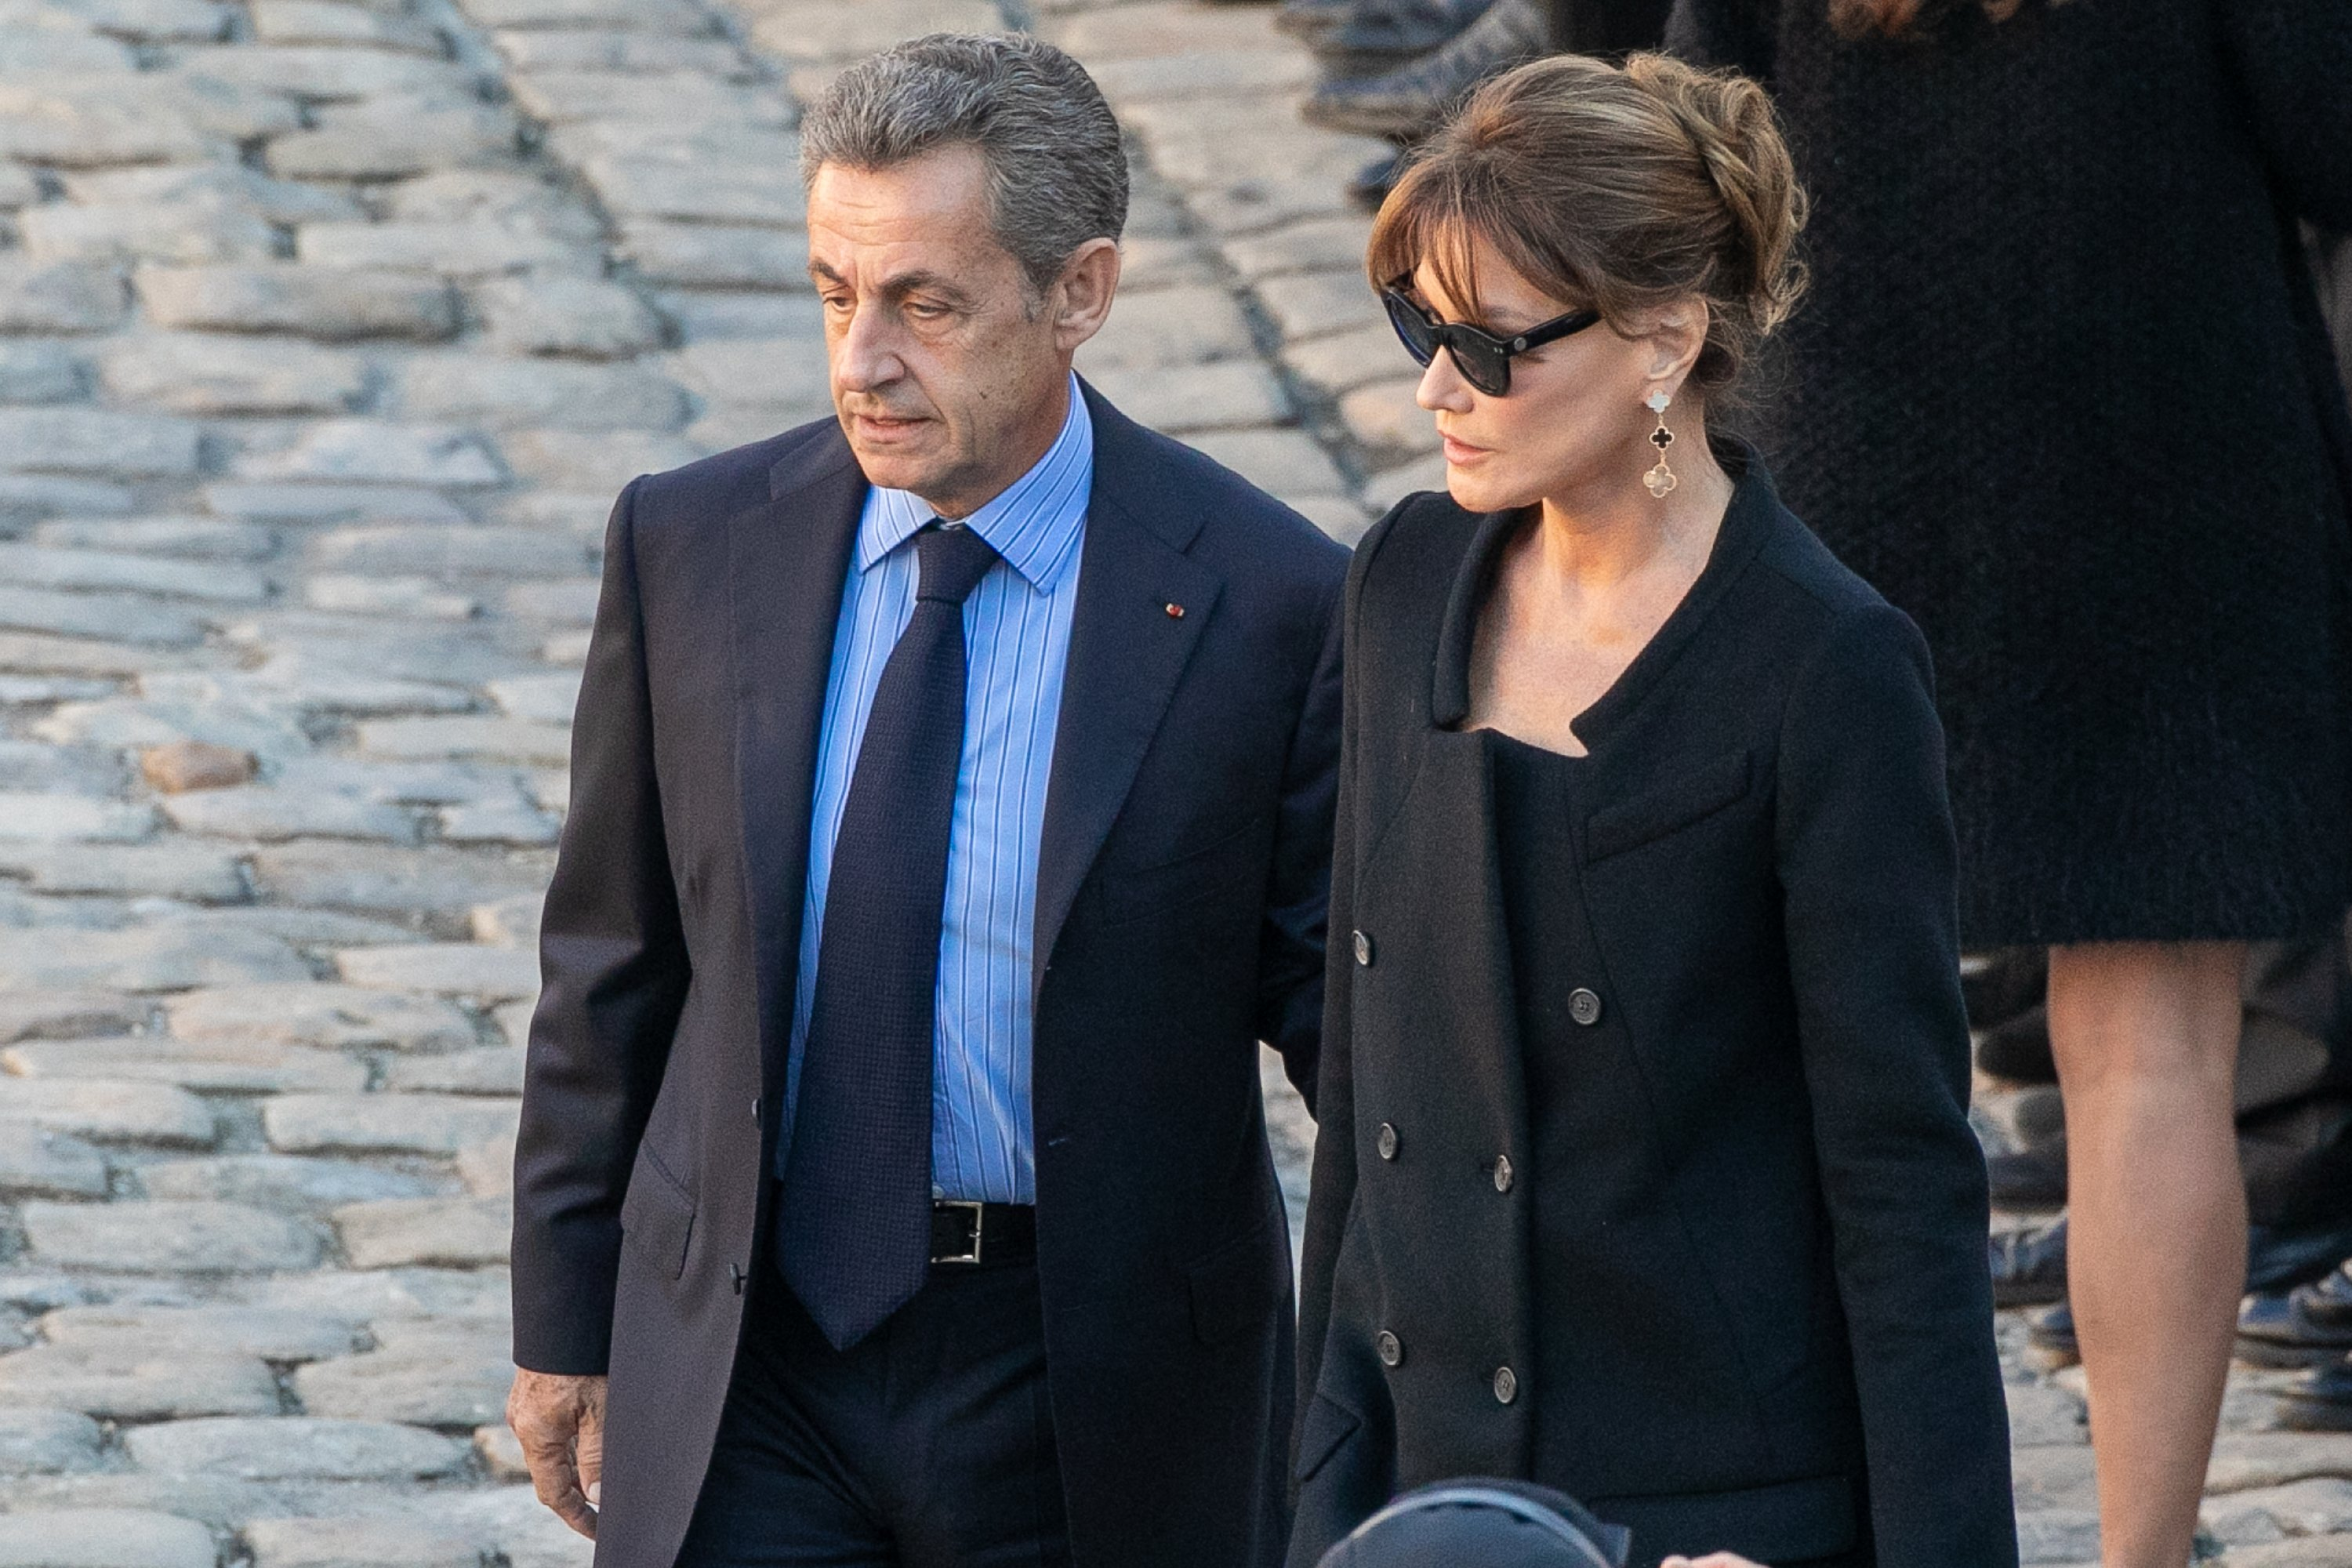 Nicolas Sarkozy et son épouse Carla Bruni Sarkozy à l'hommage national à Charles Aznavour  à Paris, France | Photo : Getty Images